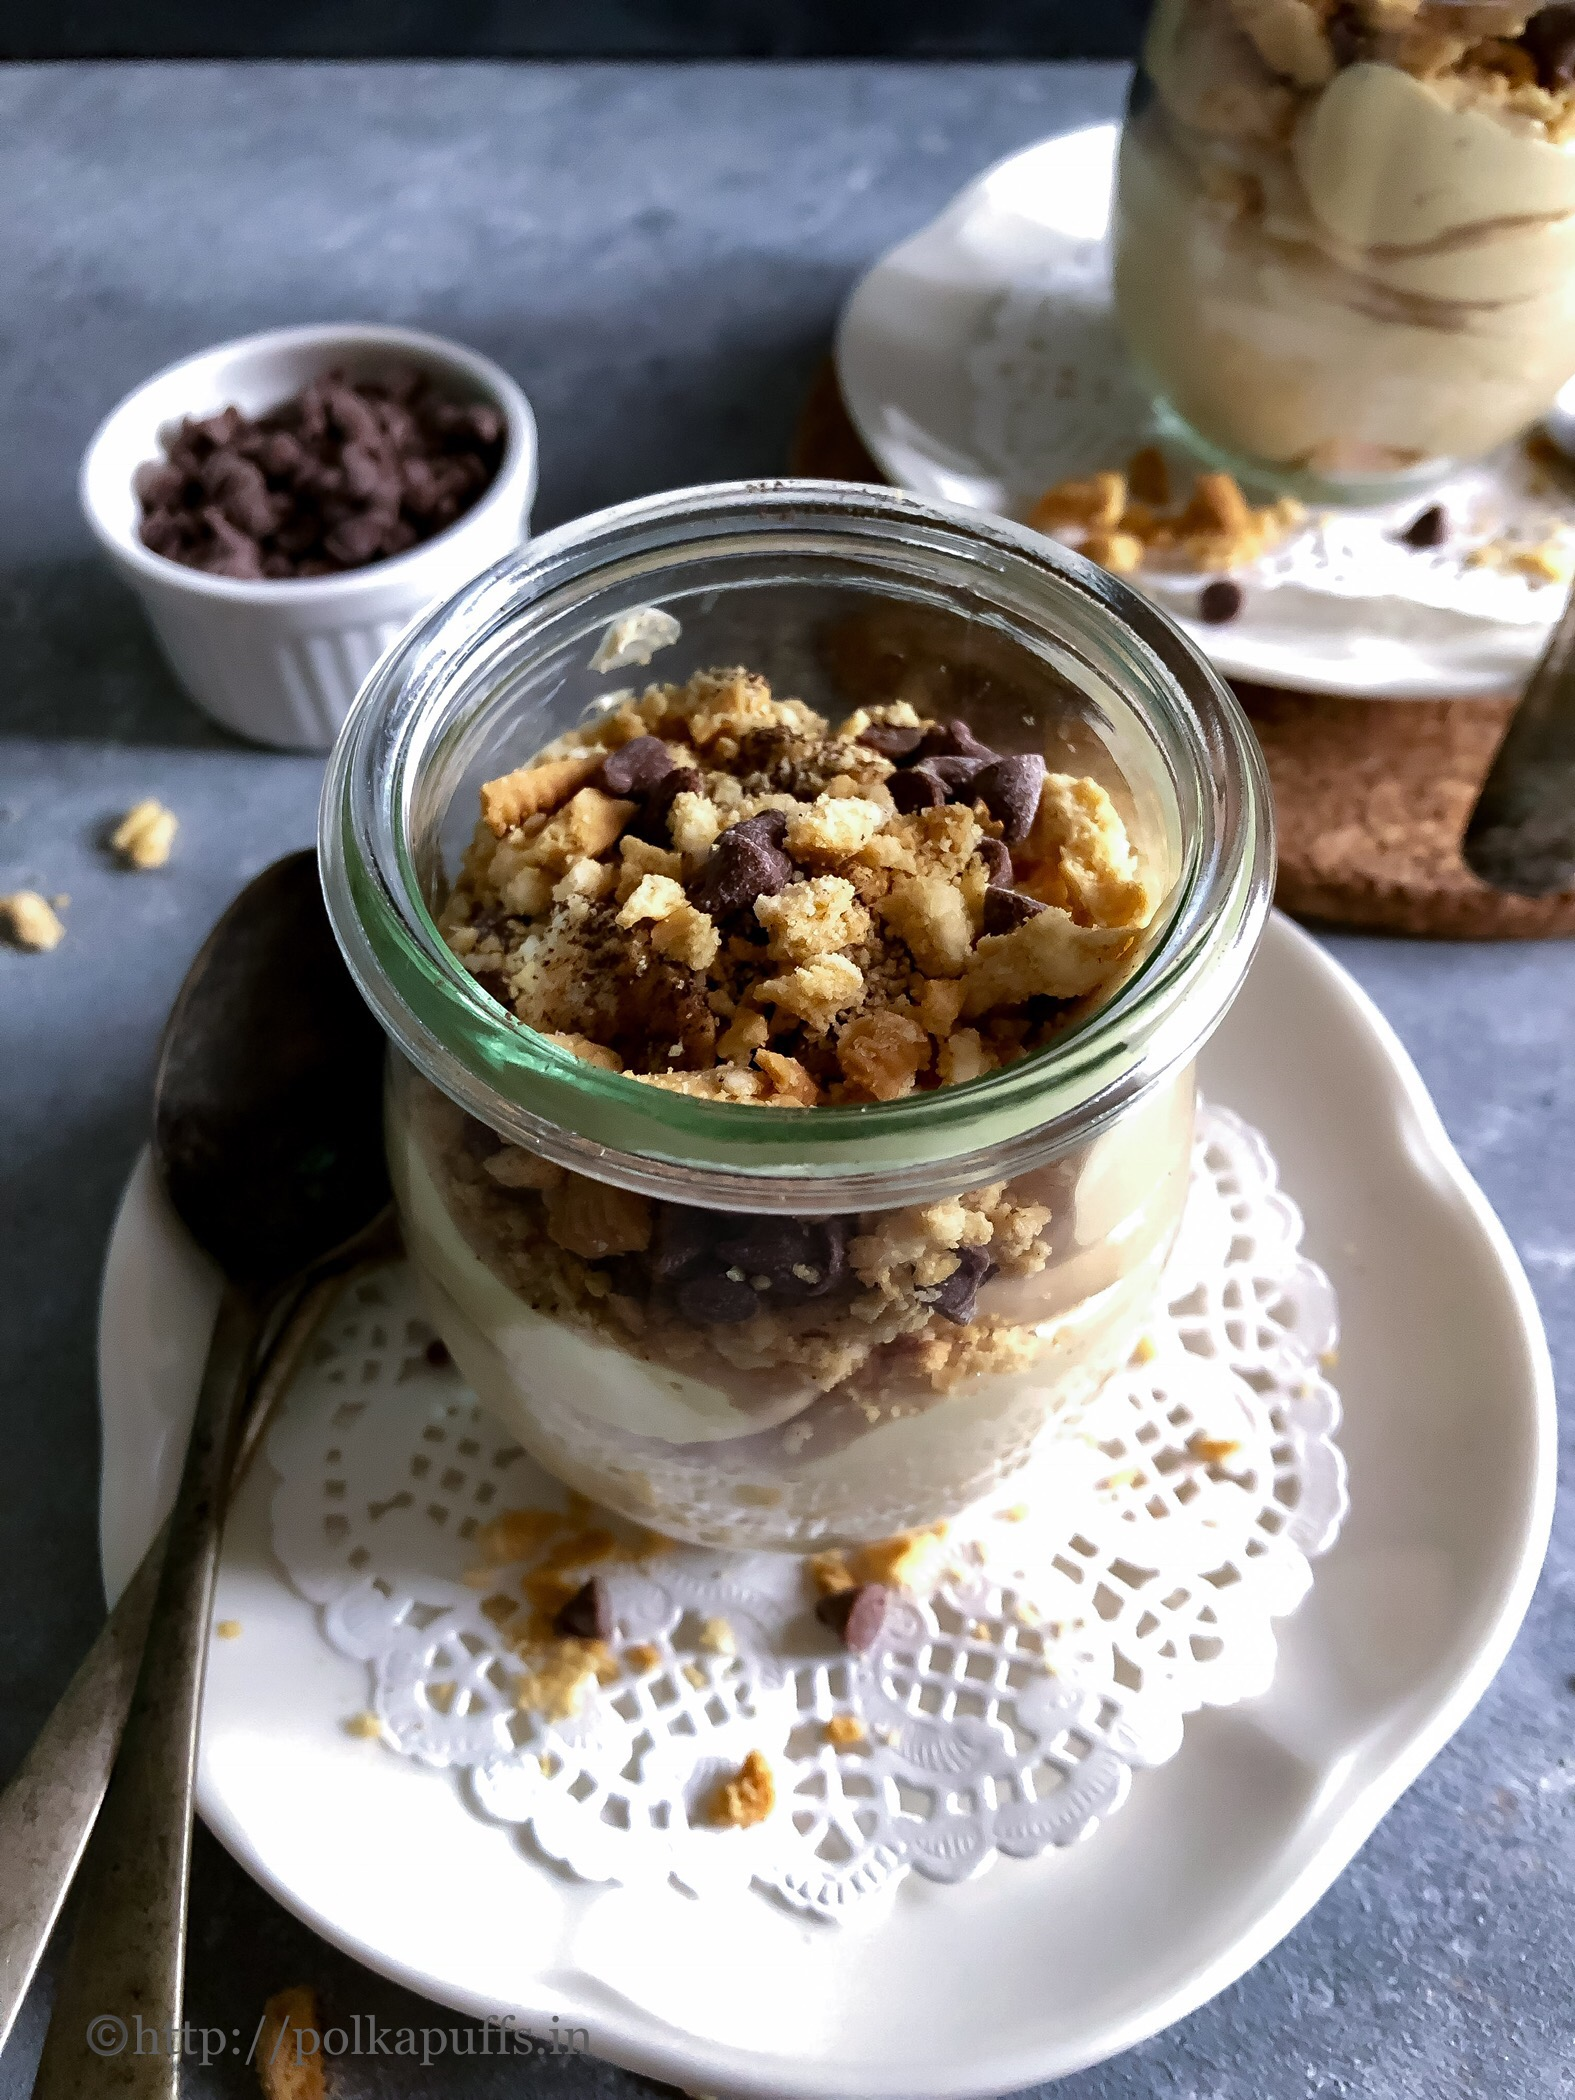 Egg free Biscoff Mousse final 2